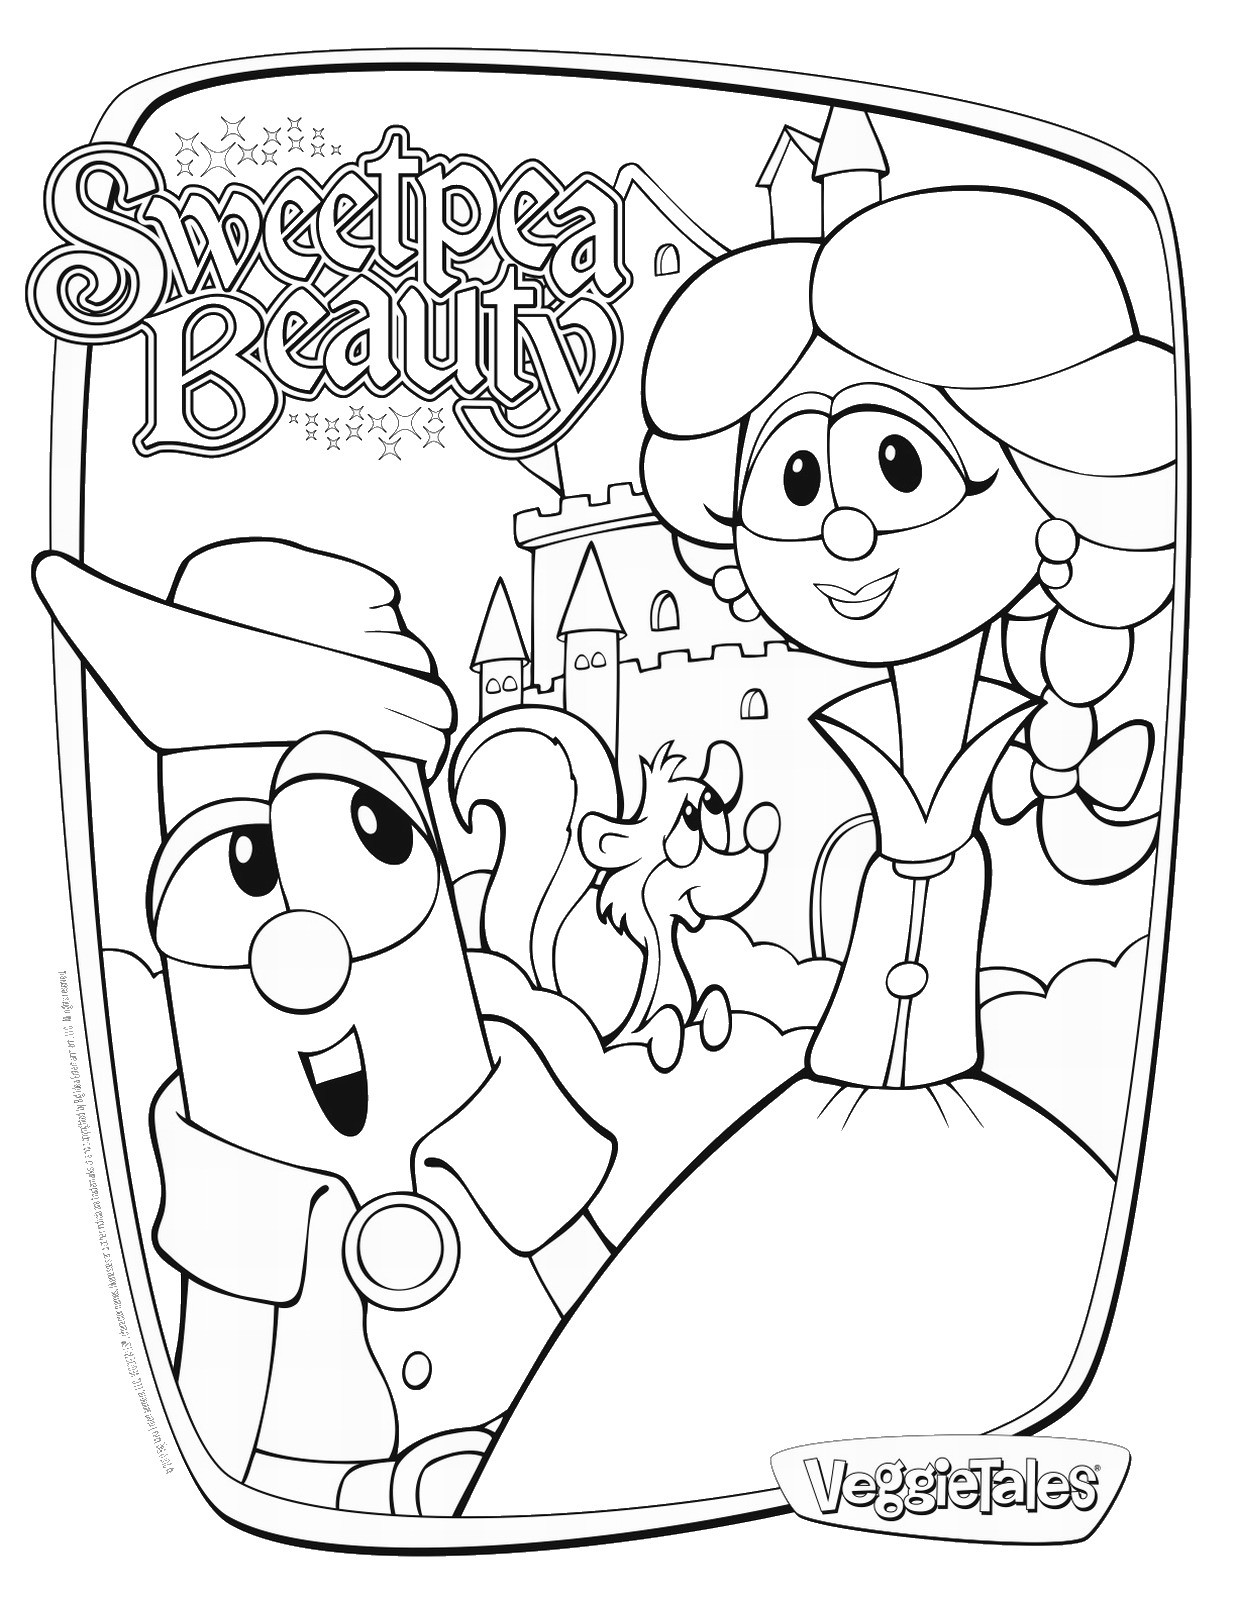 Free Coloring Sheets To Print  Veggie Tales Coloring Pages